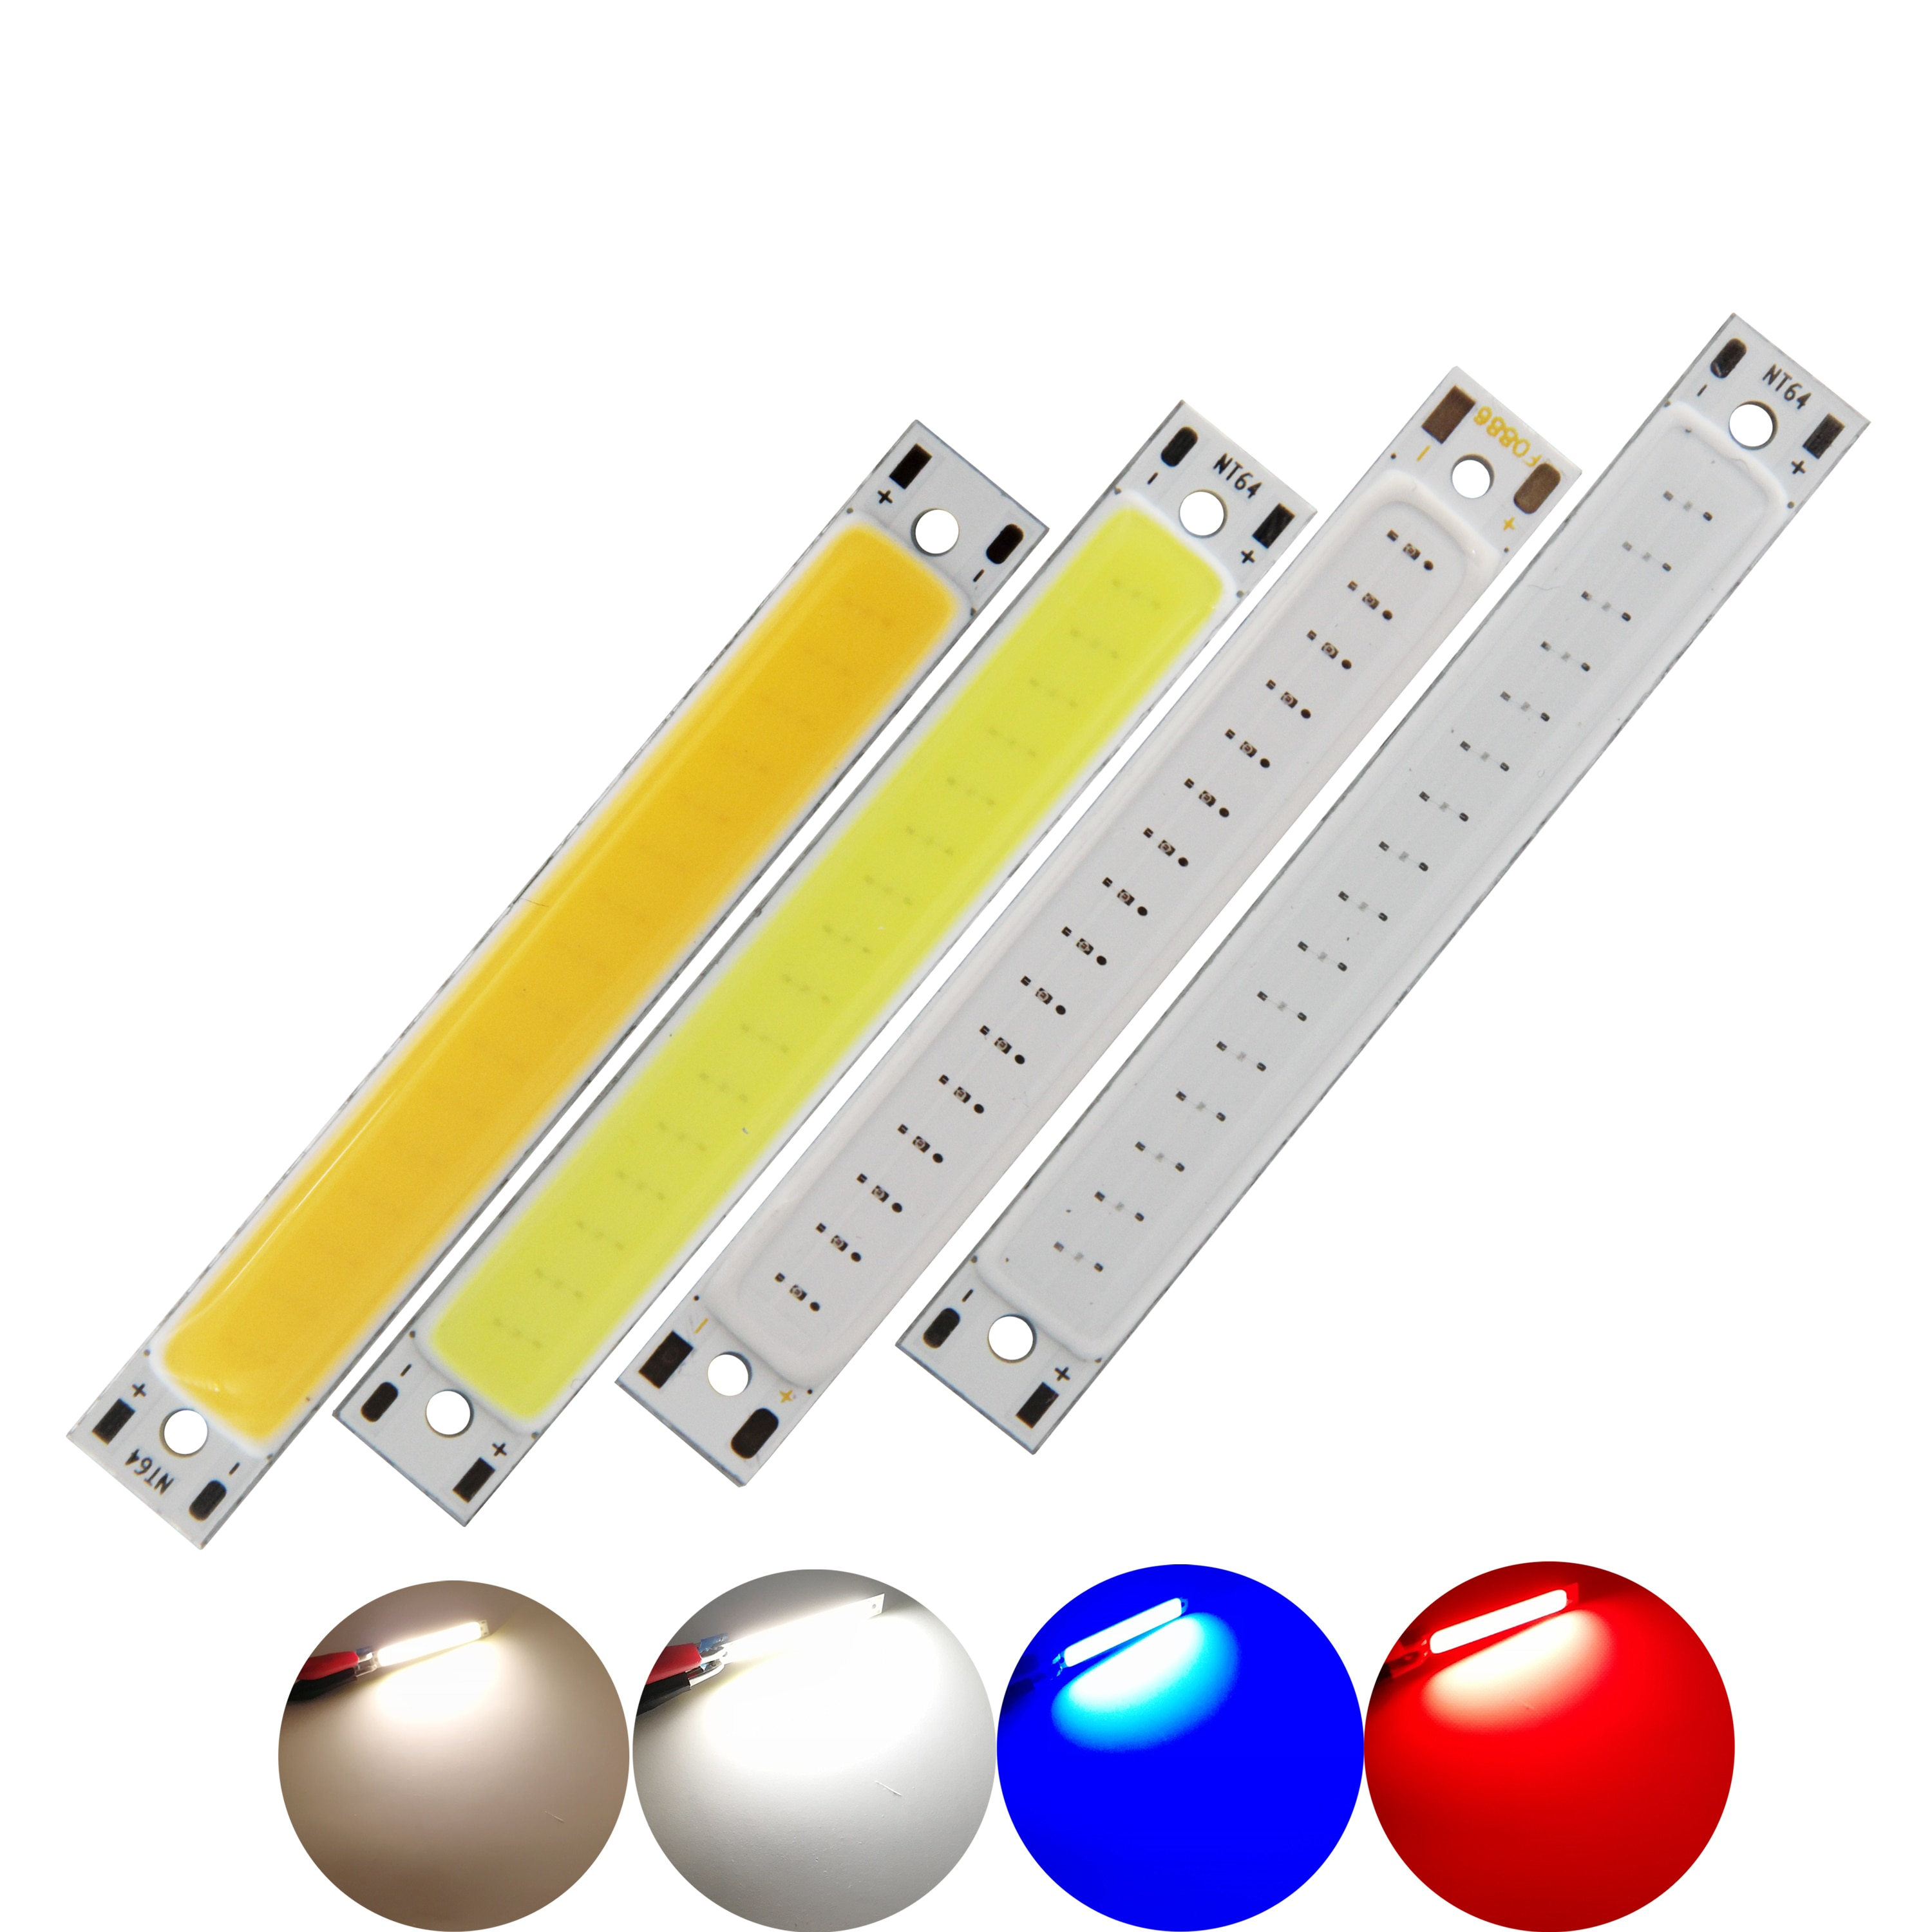 60x8mm 2v 3v led bulb cob strip 3 7v chip on board 60mm warm cold white blue red color 1w 3w led lighting for cob work lamps diy manufacturer 60mm 8mm LED COB Strip 1.5W 3W 3V 3.7V DC Warm White Blue Red COB LED source for DIY Bicycle work lamp light